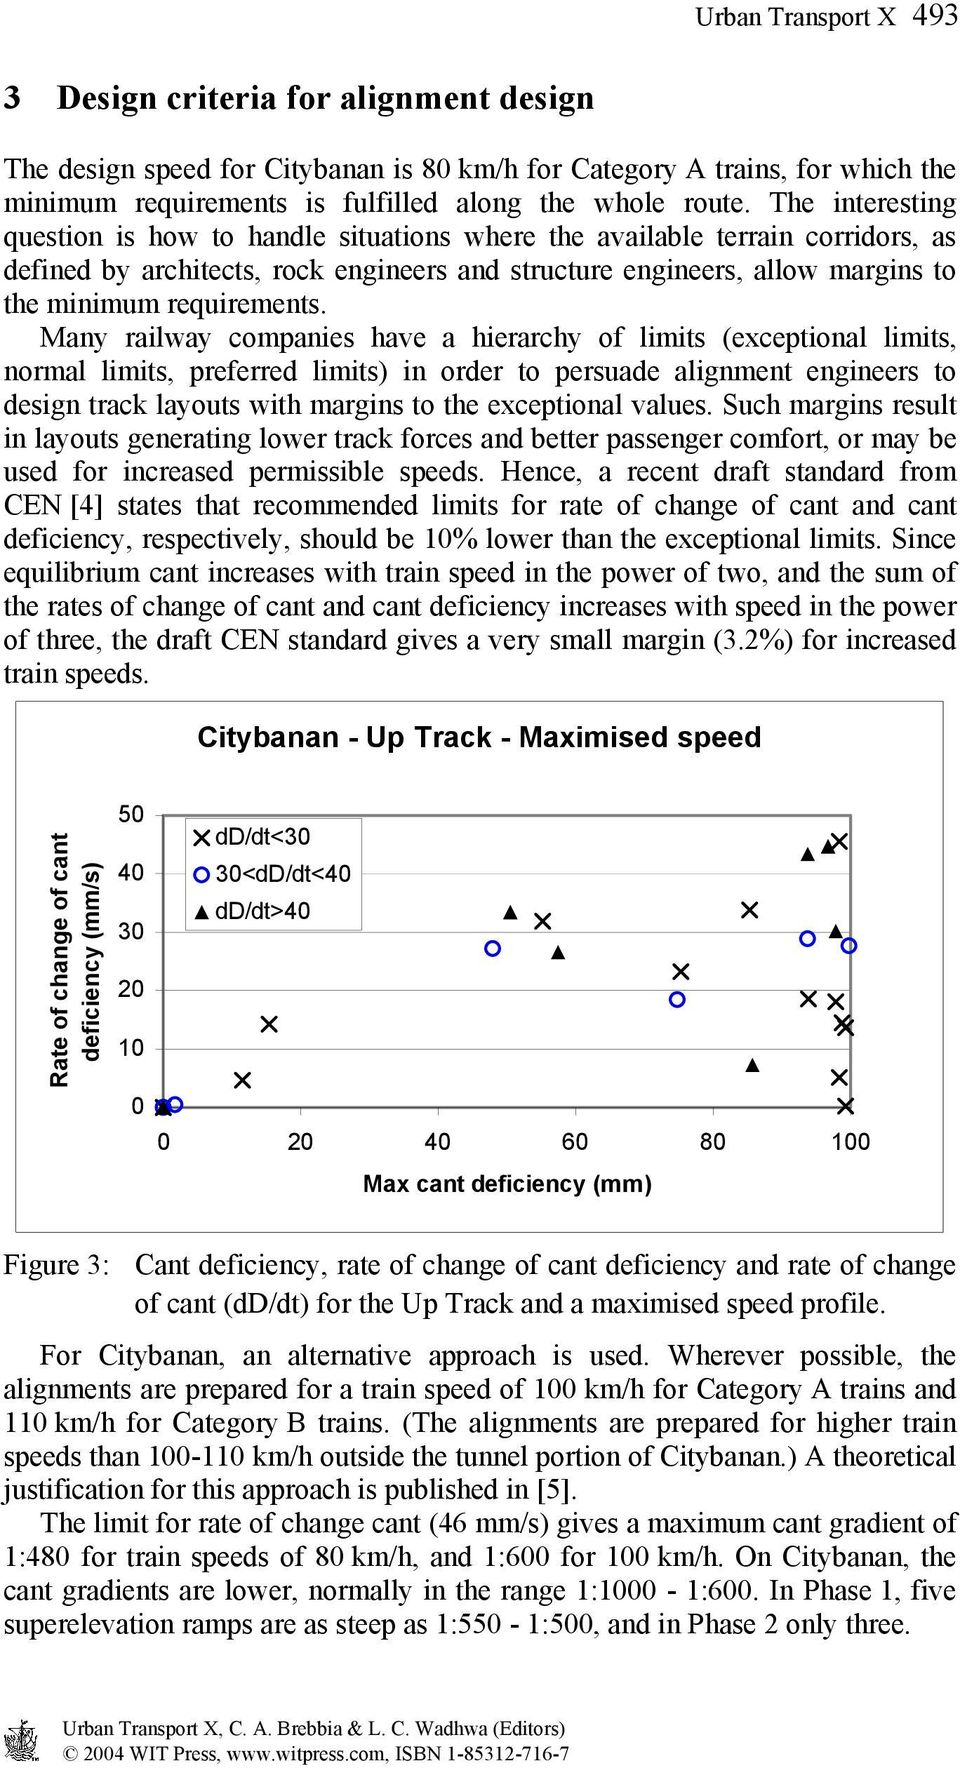 Many railway companies have a hierarchy of limits (exceptional limits, normal limits, preferred limits) in order to persuade alignment engineers to design track layouts with margins to the